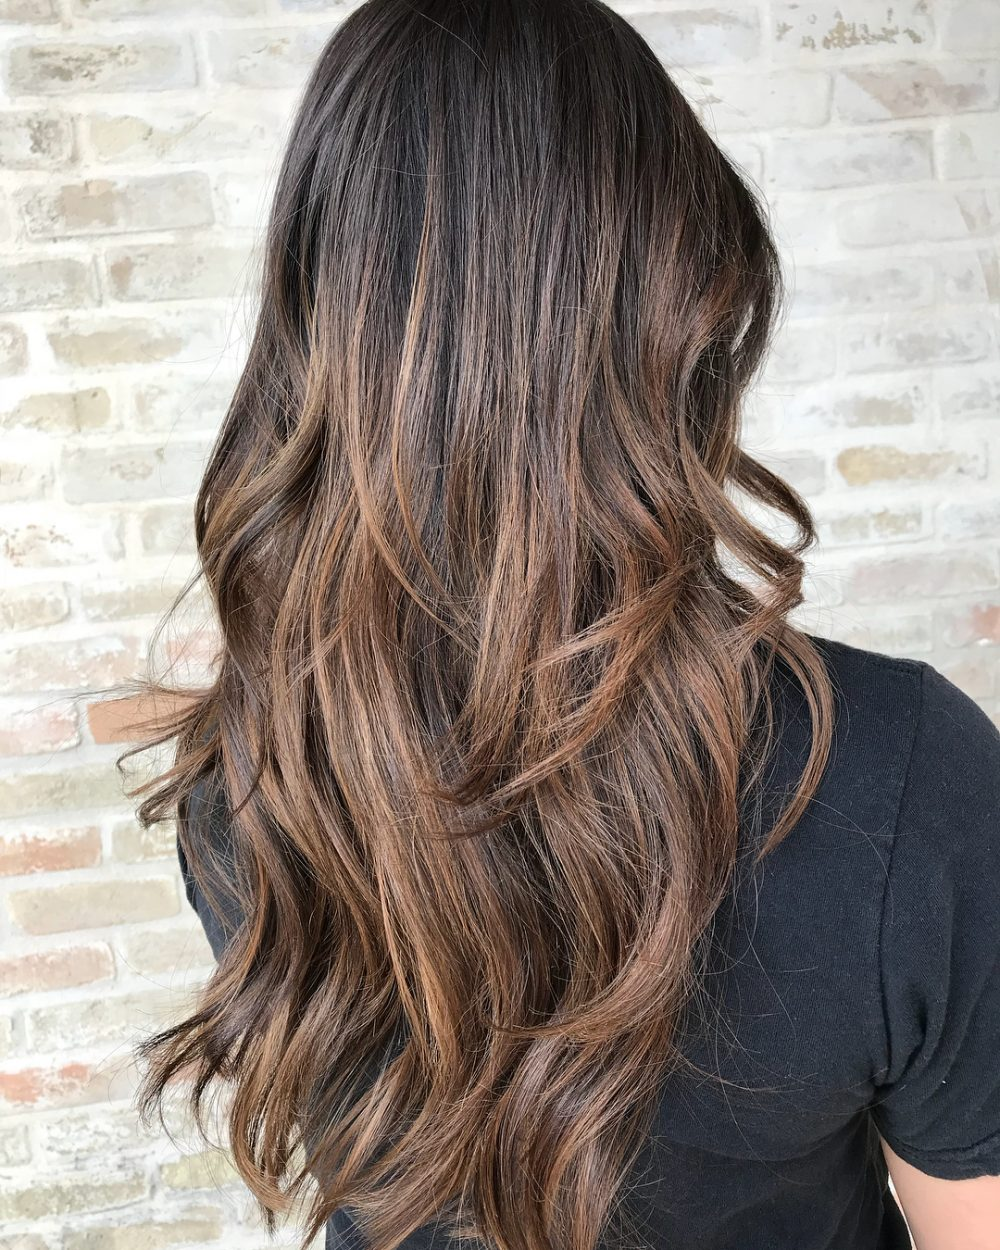 Layered Cuts For Thick Hair Best Hairstyles 2018